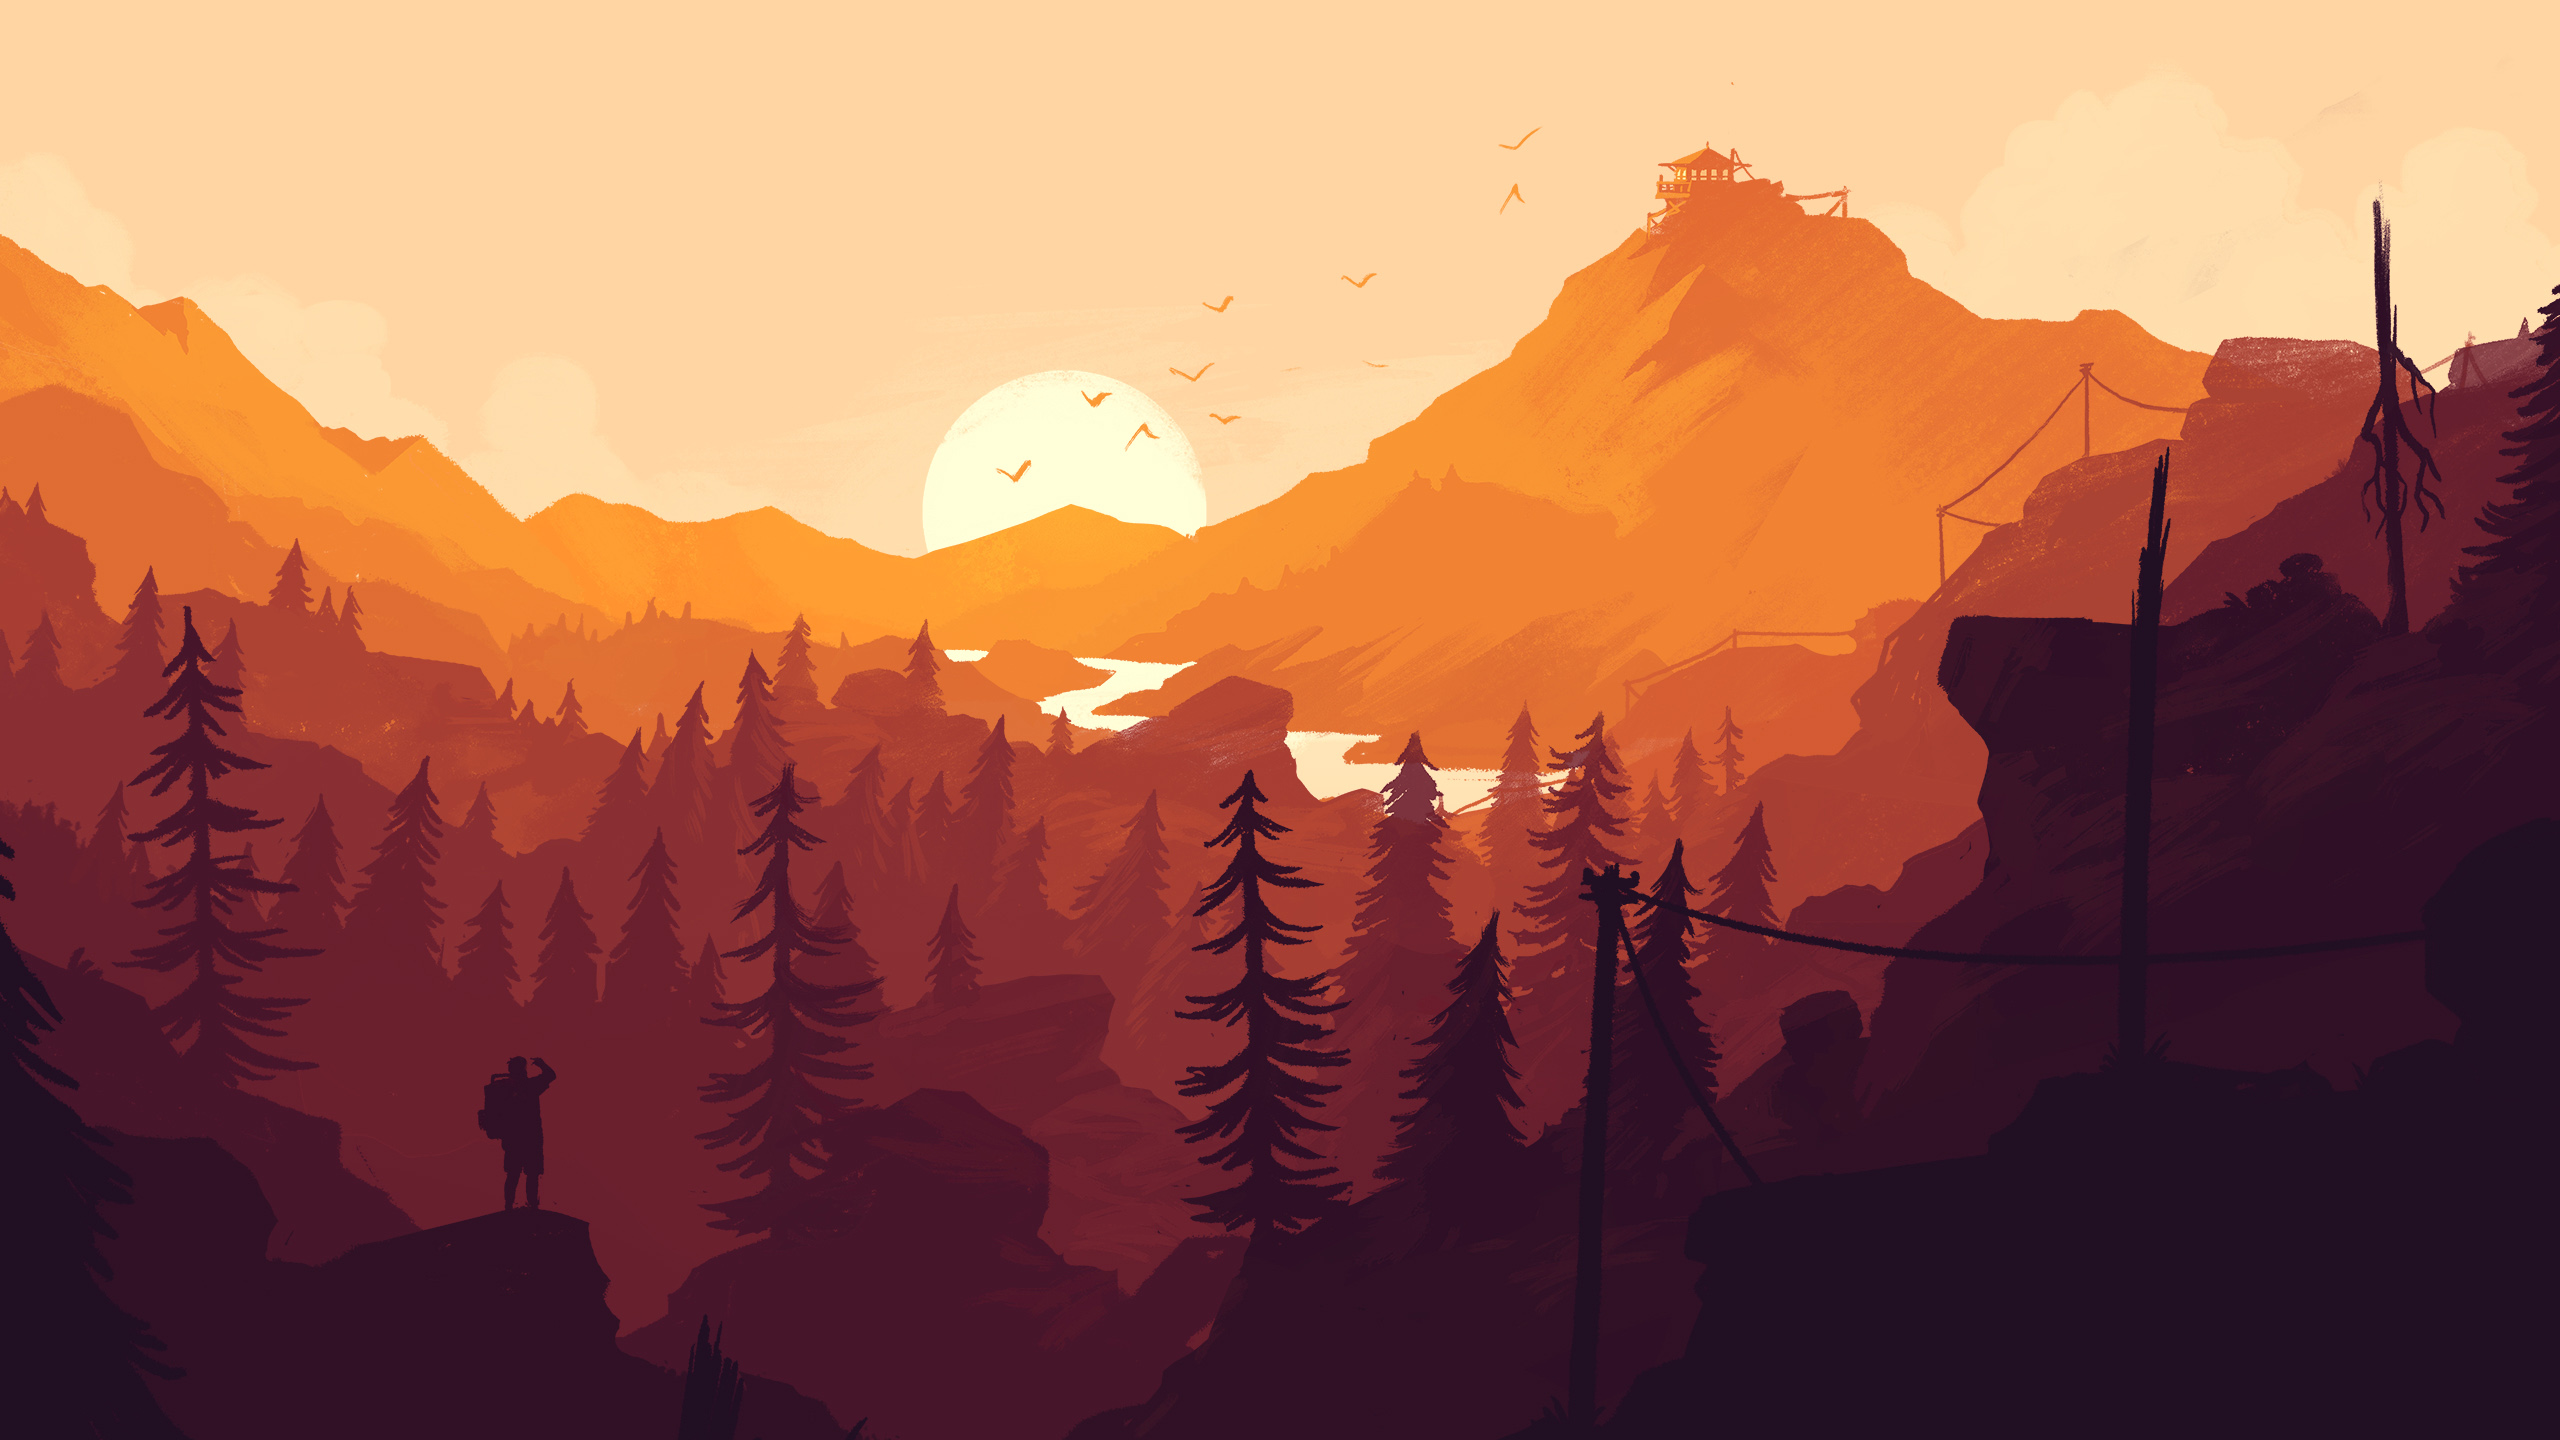 8k Animal Wallpaper Download: Firewatch Wallpapers, Photos And Desktop Backgrounds Up To